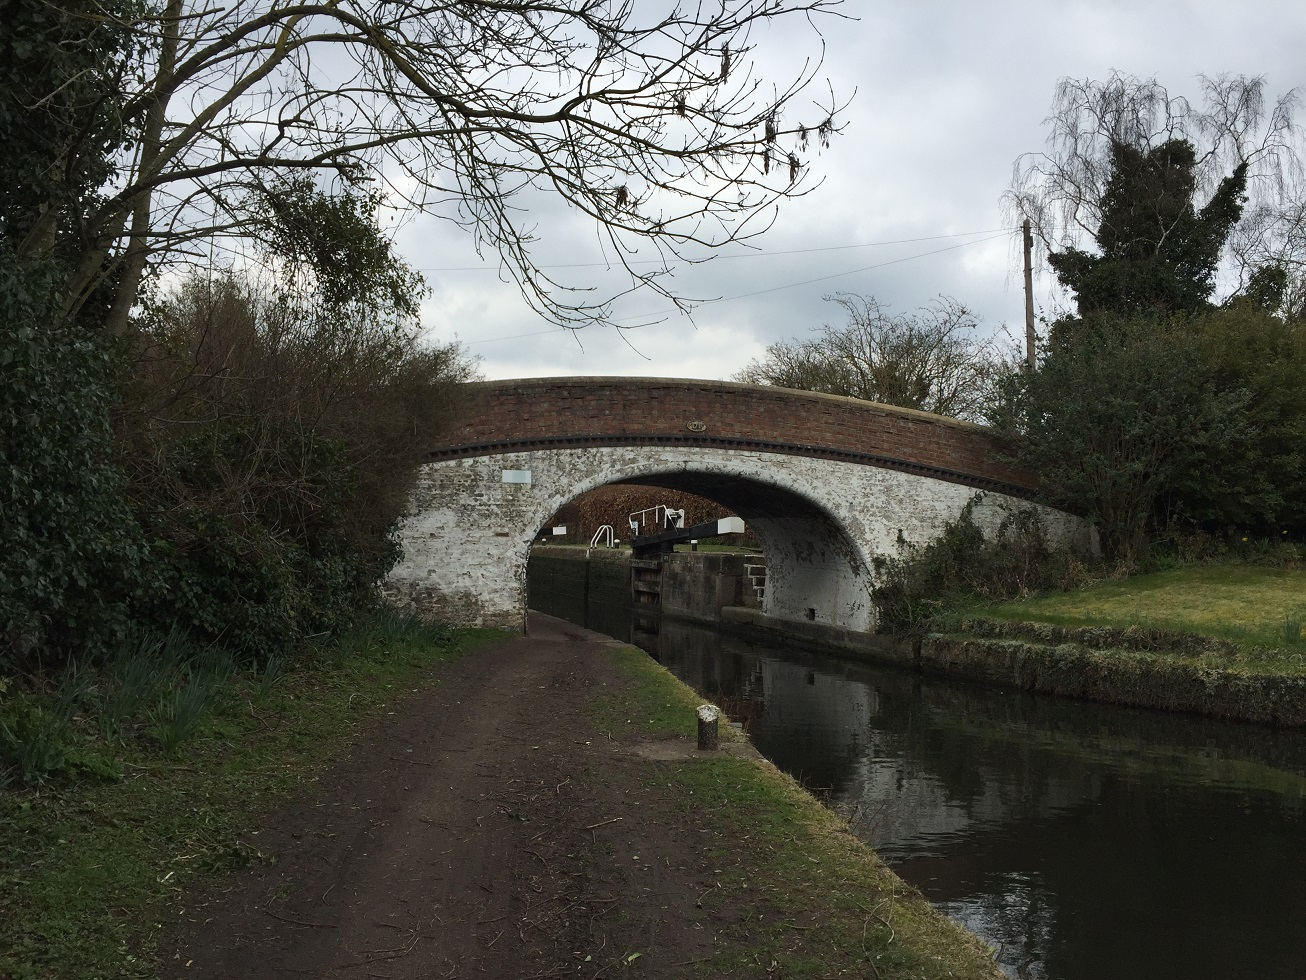 Grand Union Canal, near Harefield, on the London Loop Recreational Walk